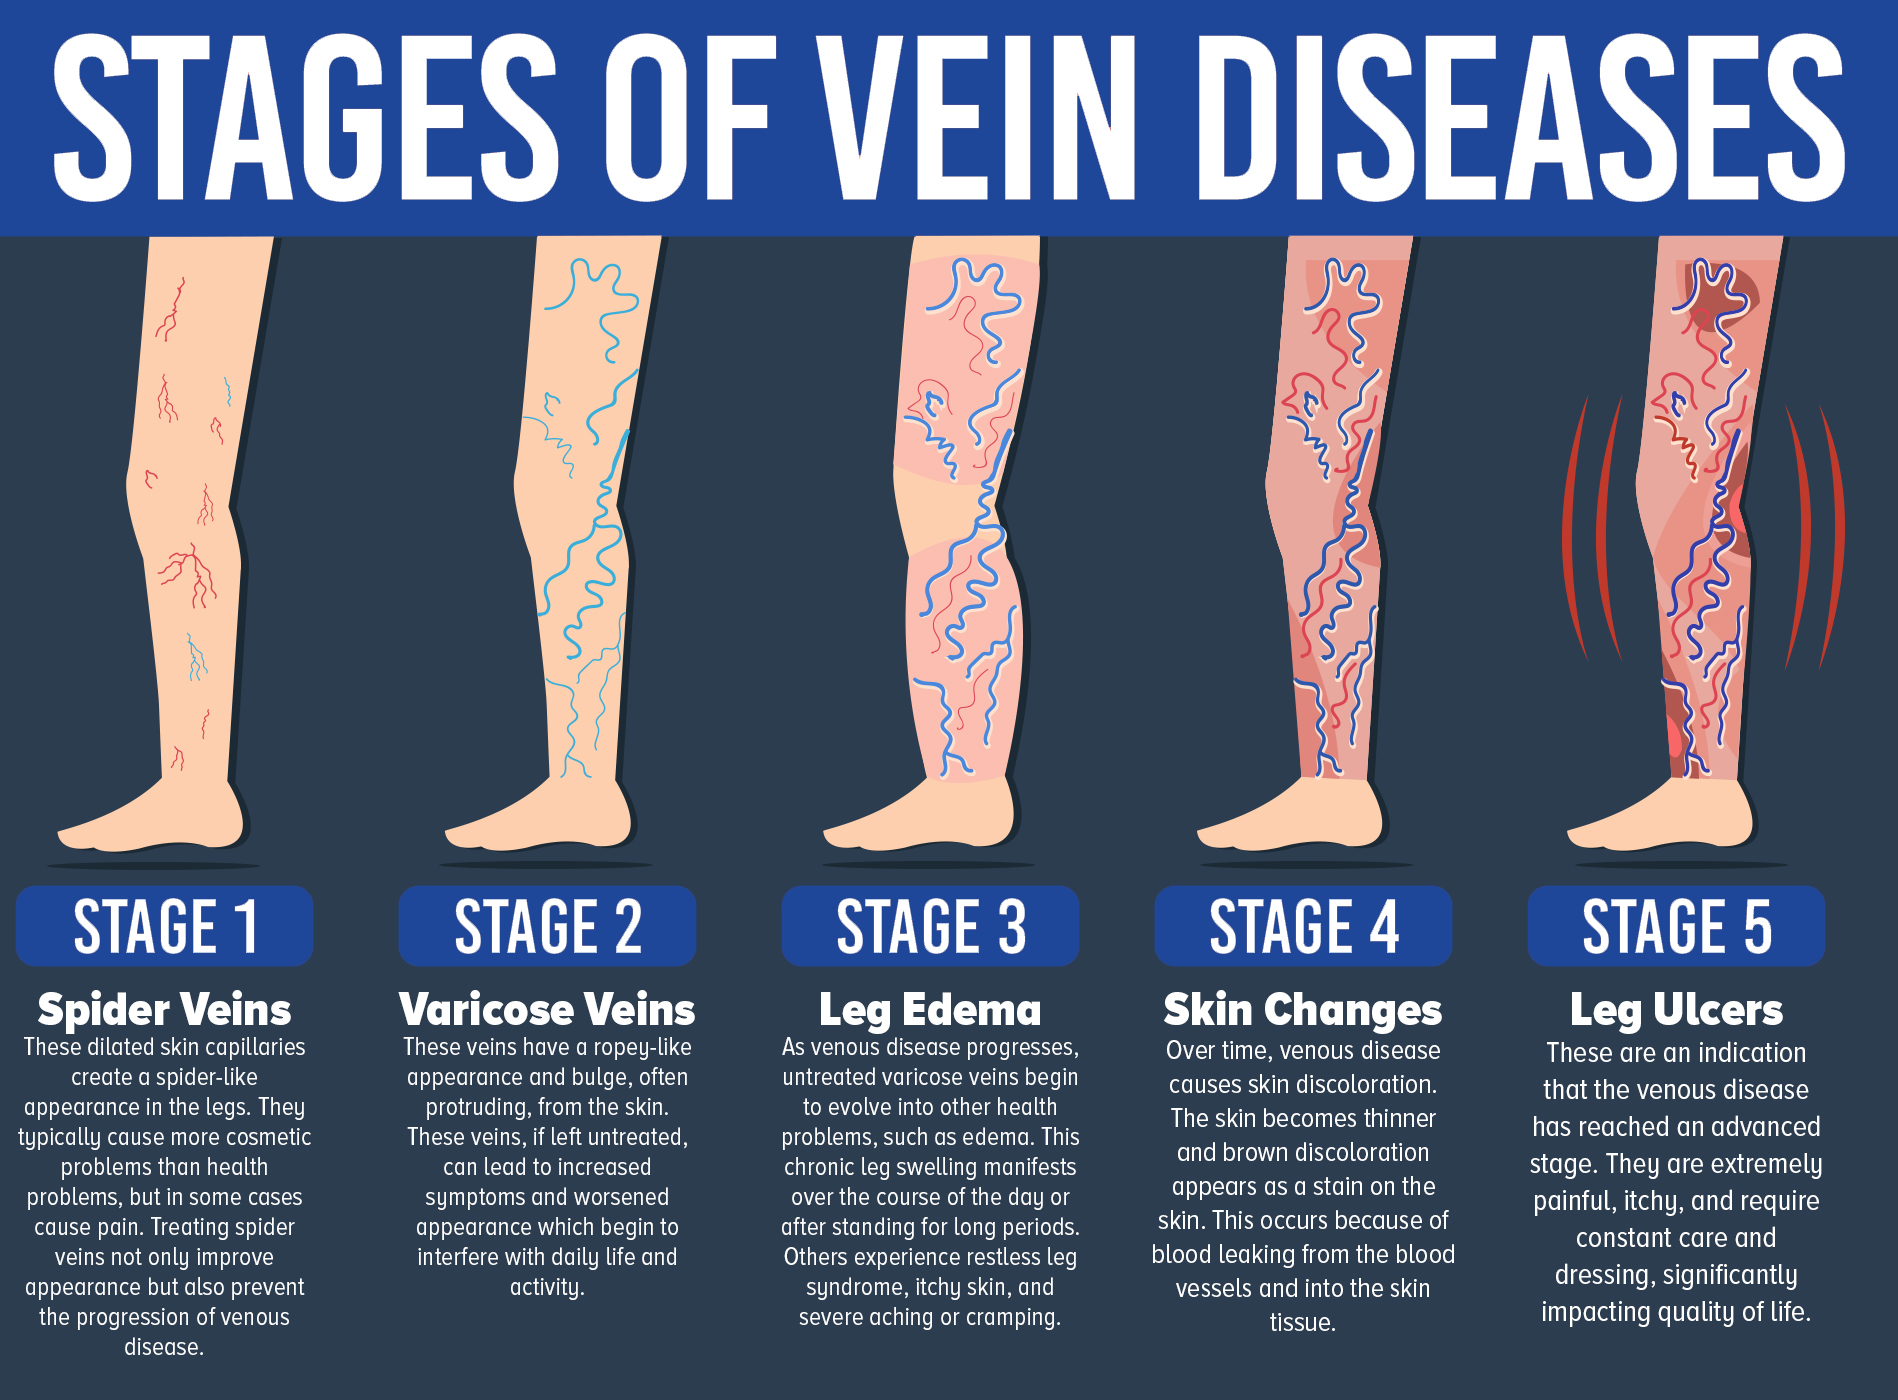 Stages of Vein Diseases